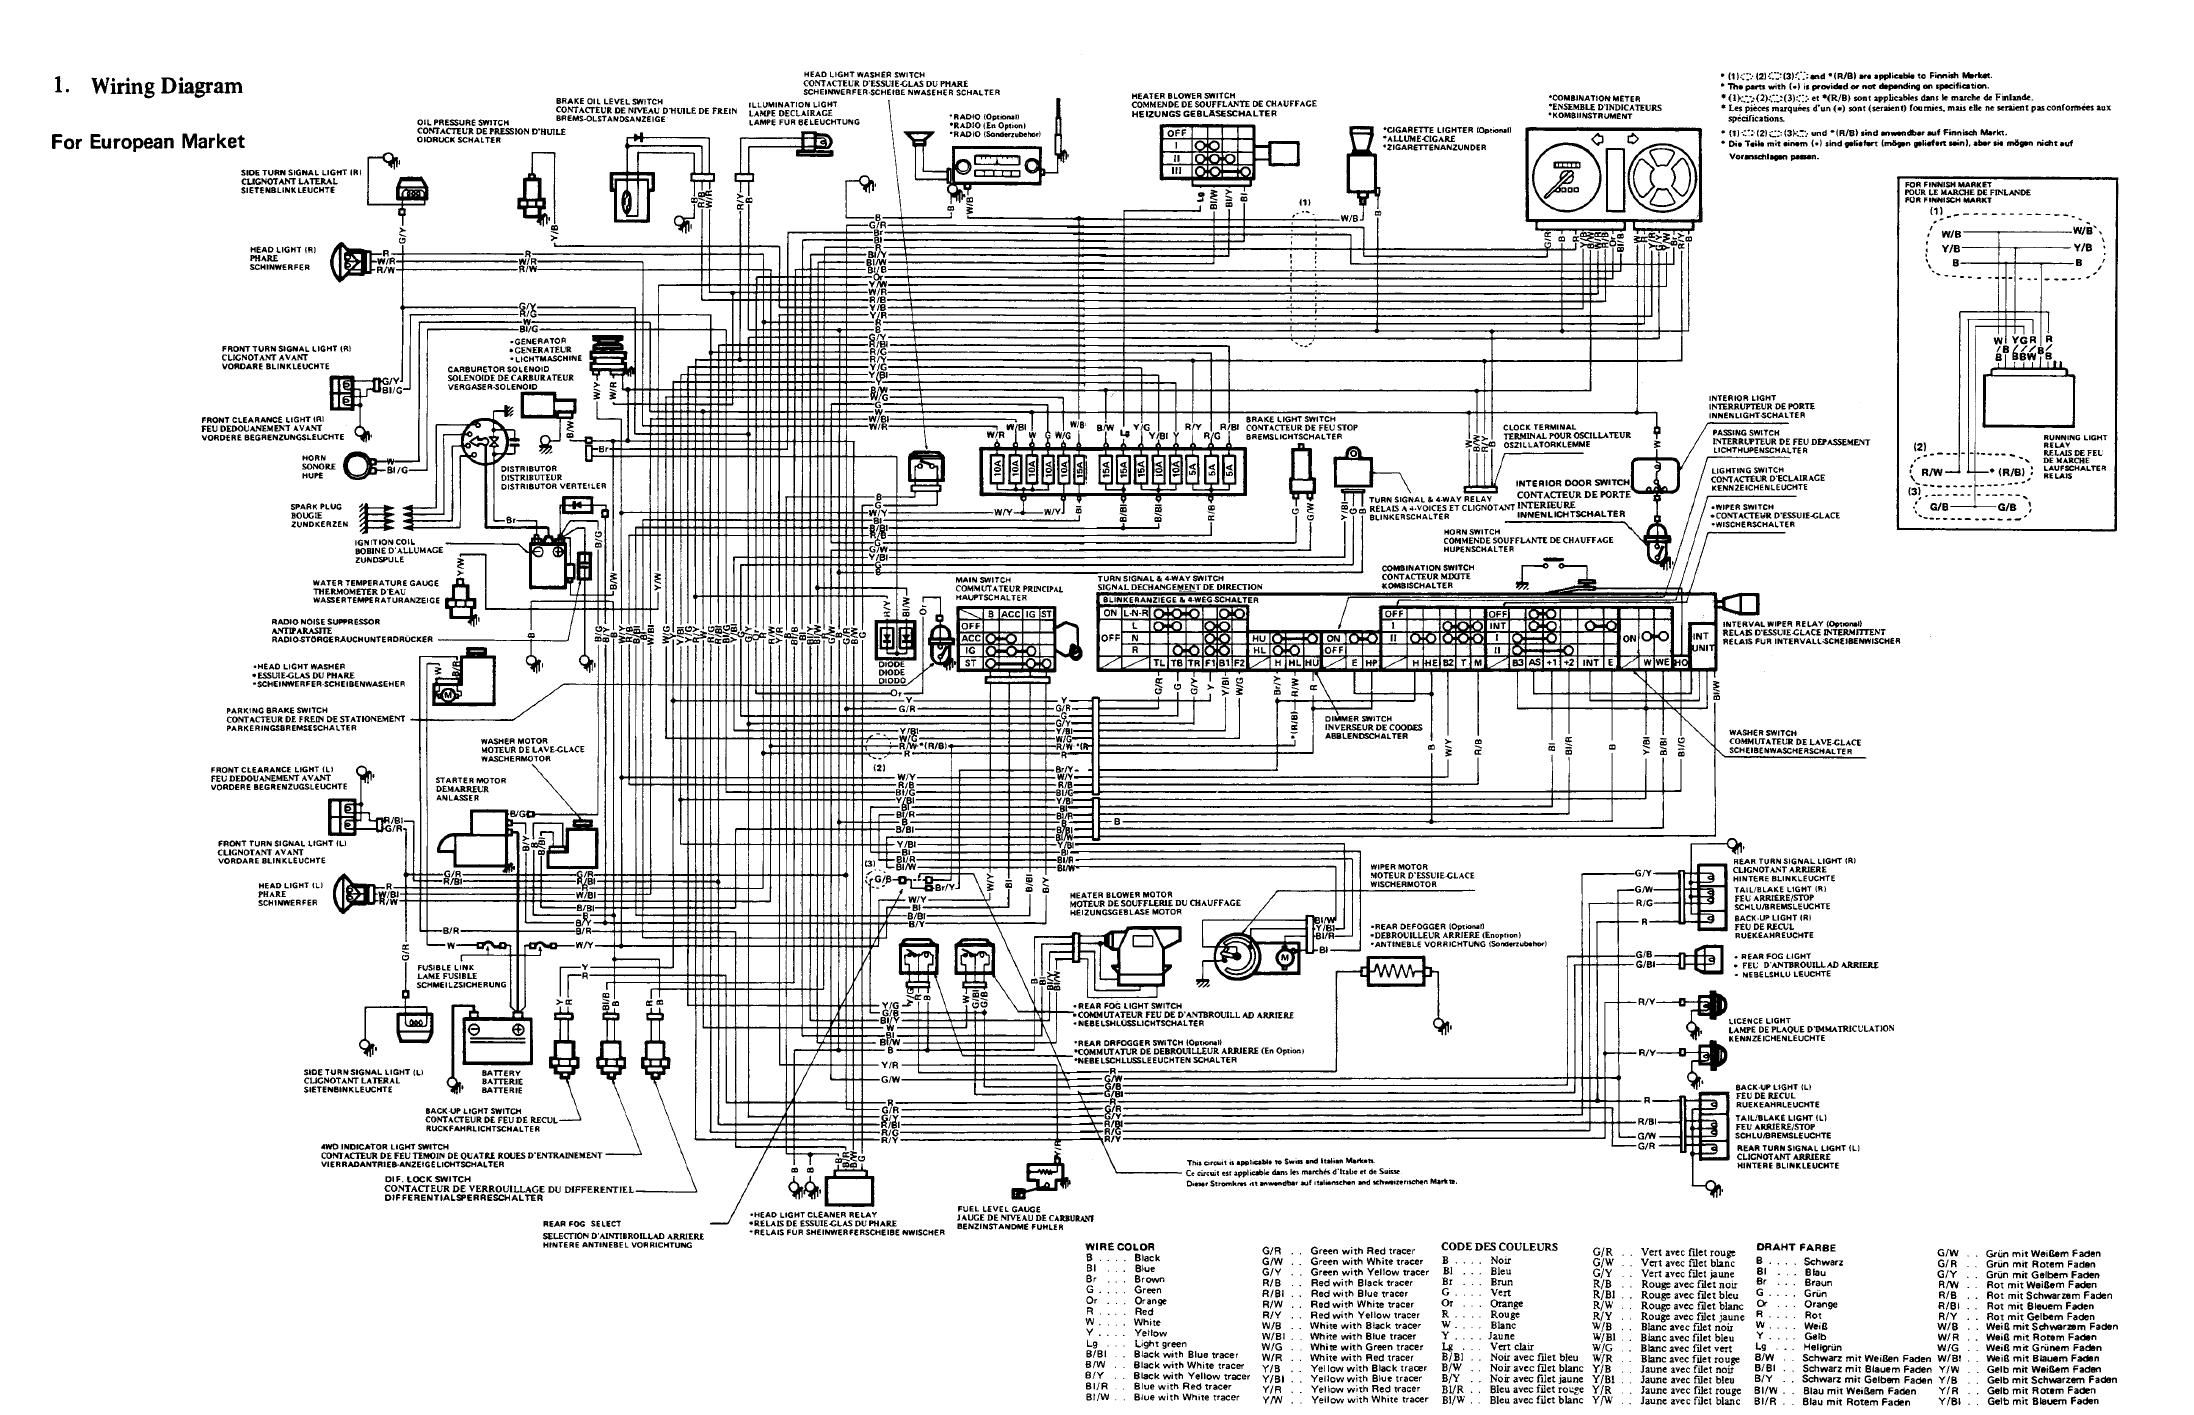 Wiring Diagram For Off Road Lights Jeep 1998 Grand Cherokee Radio Suzuki Club Uk  View Topic Diagrams Sj